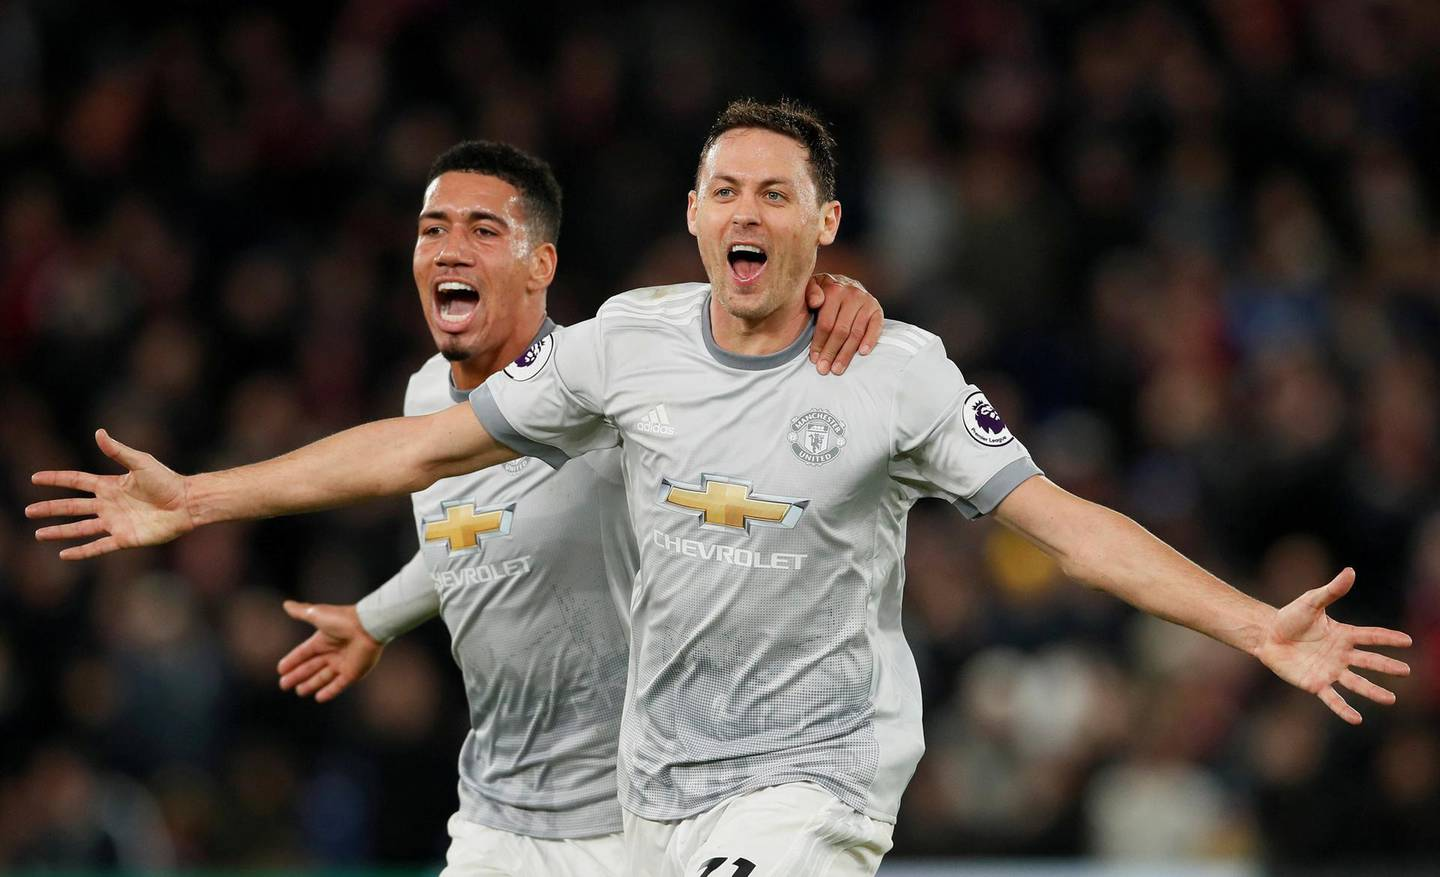 """Soccer Football - Premier League - Crystal Palace v Manchester United - Selhurst Park, London, Britain - March 5, 2018   Manchester United's Nemanja Matic celebrates scoring their third goal with Chris Smalling   REUTERS/David Klein    EDITORIAL USE ONLY. No use with unauthorized audio, video, data, fixture lists, club/league logos or """"live"""" services. Online in-match use limited to 75 images, no video emulation. No use in betting, games or single club/league/player publications.  Please contact your account representative for further details.     TPX IMAGES OF THE DAY"""